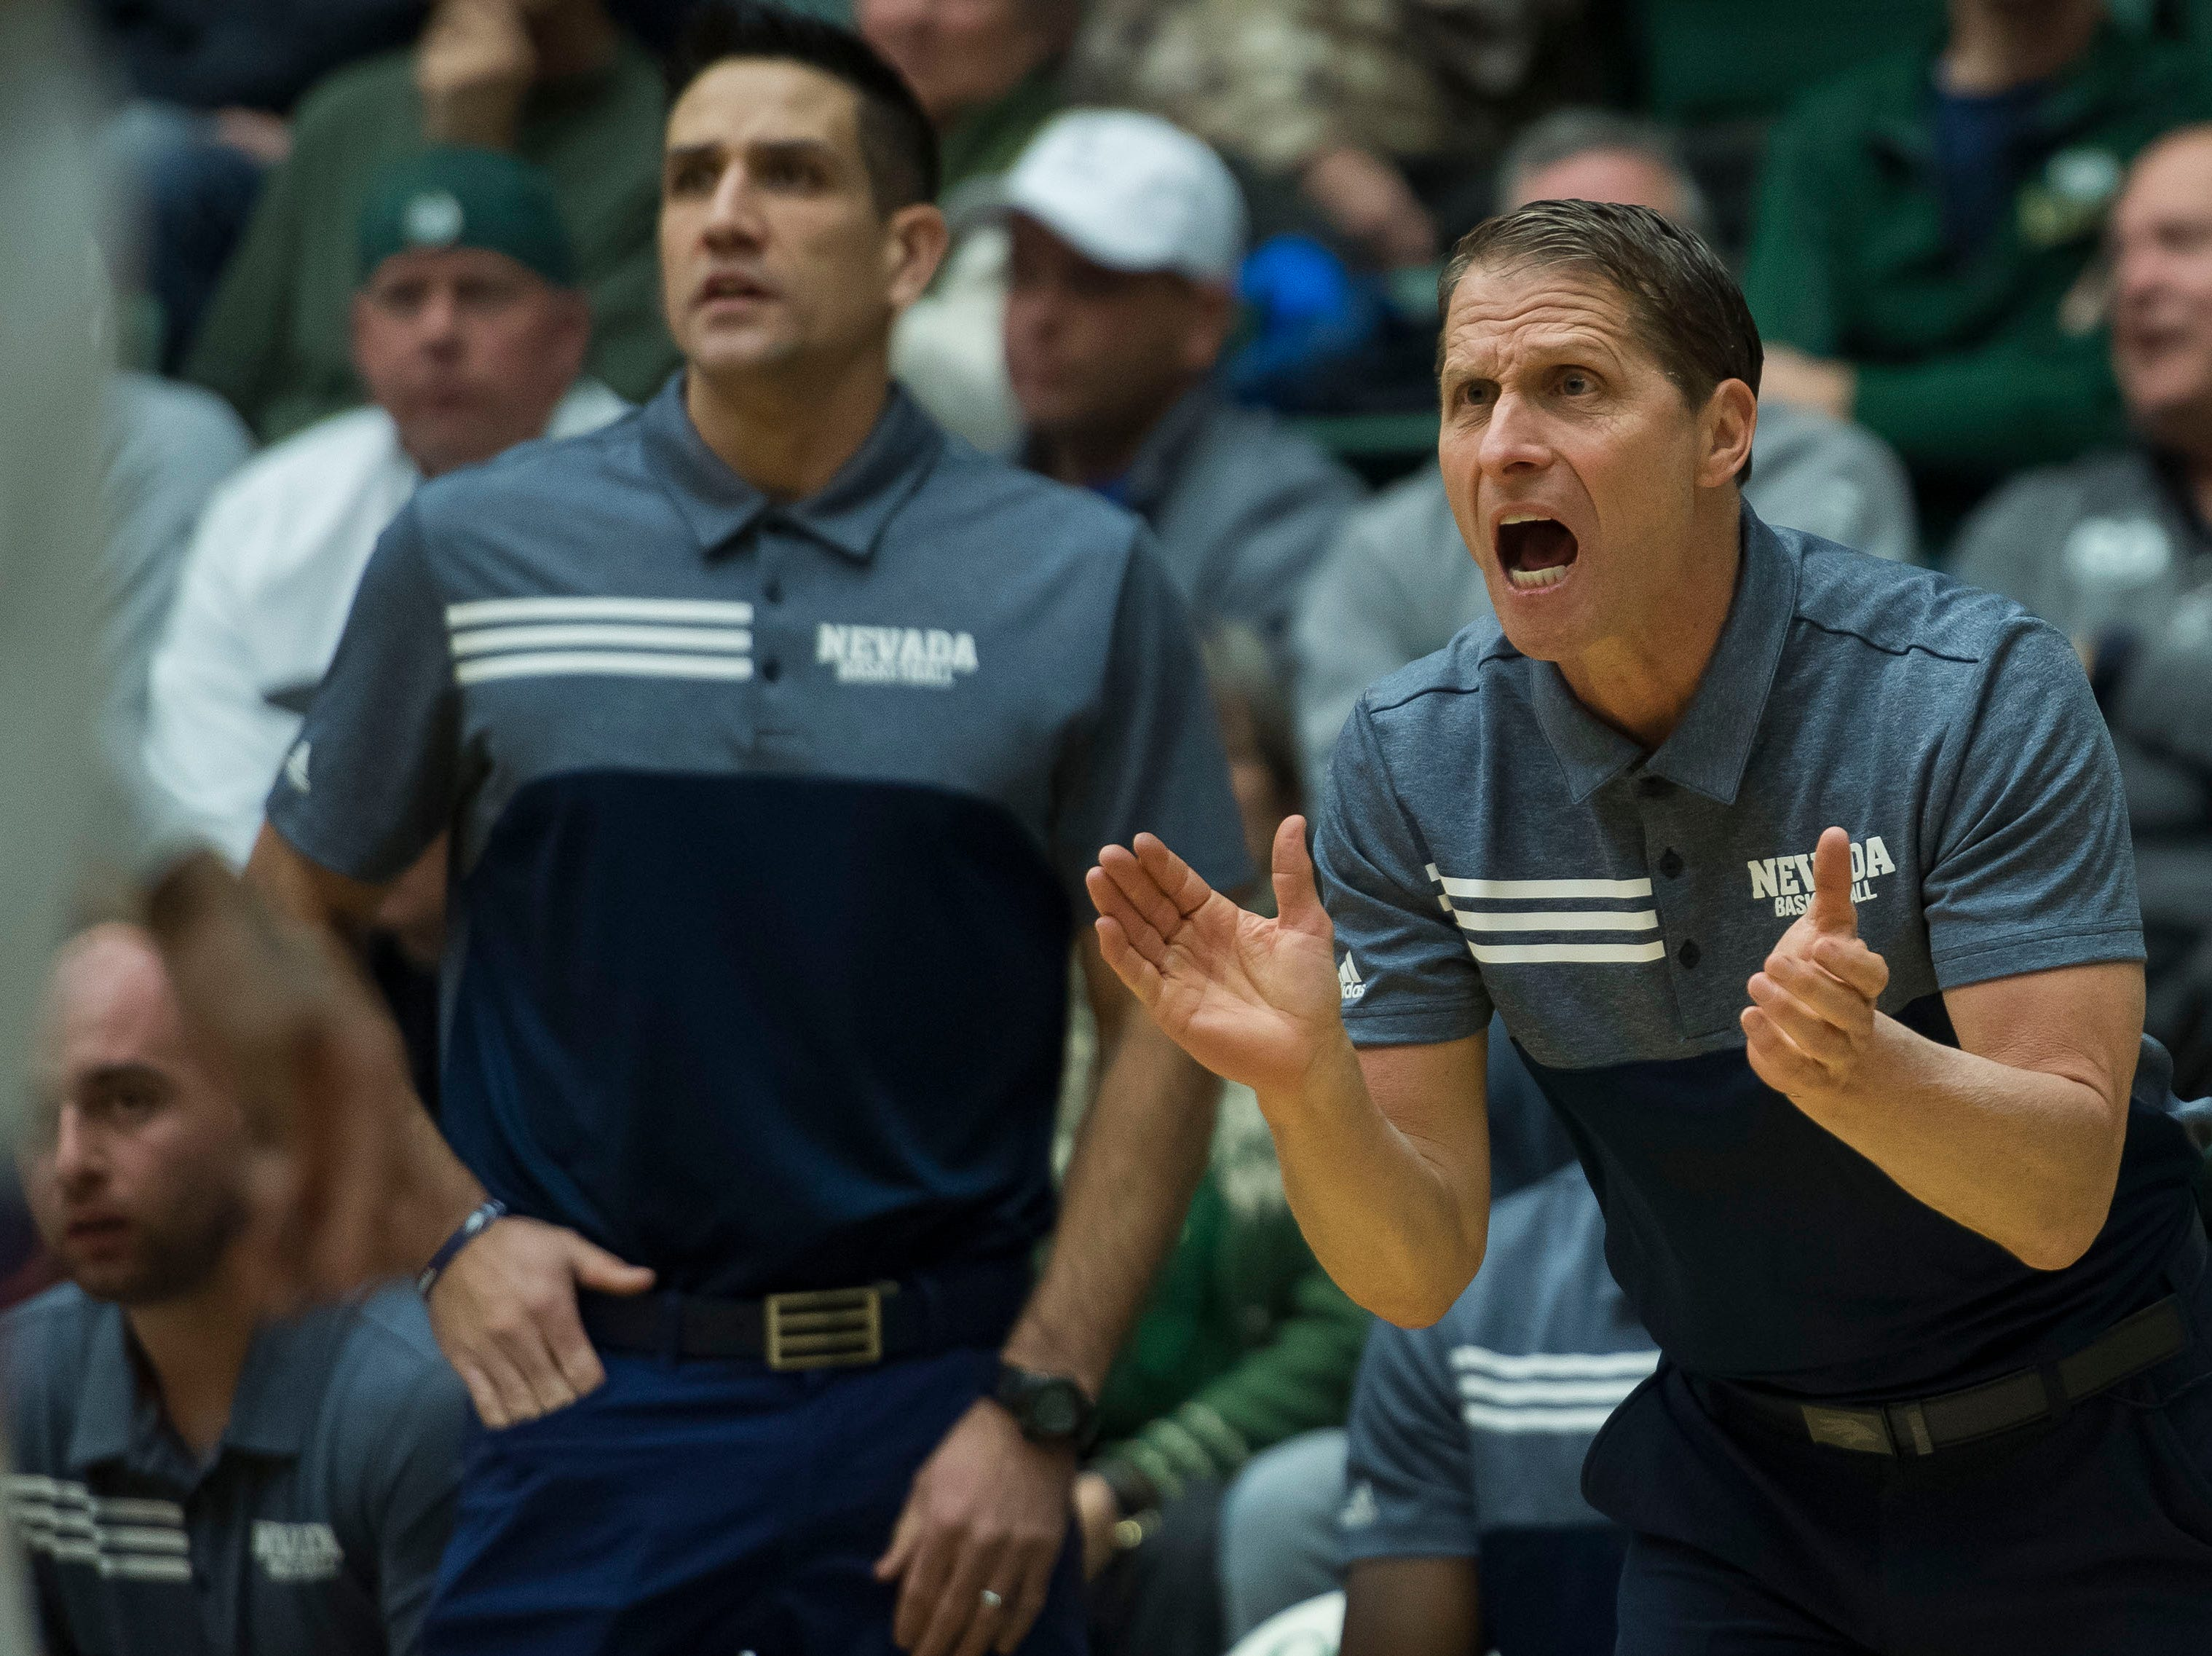 Nevada head coach Eric Musselman talks to his team during a game against Colorado State University on Wednesday, Feb. 6, 2019, at Moby Arena Fort Collins, Colo.